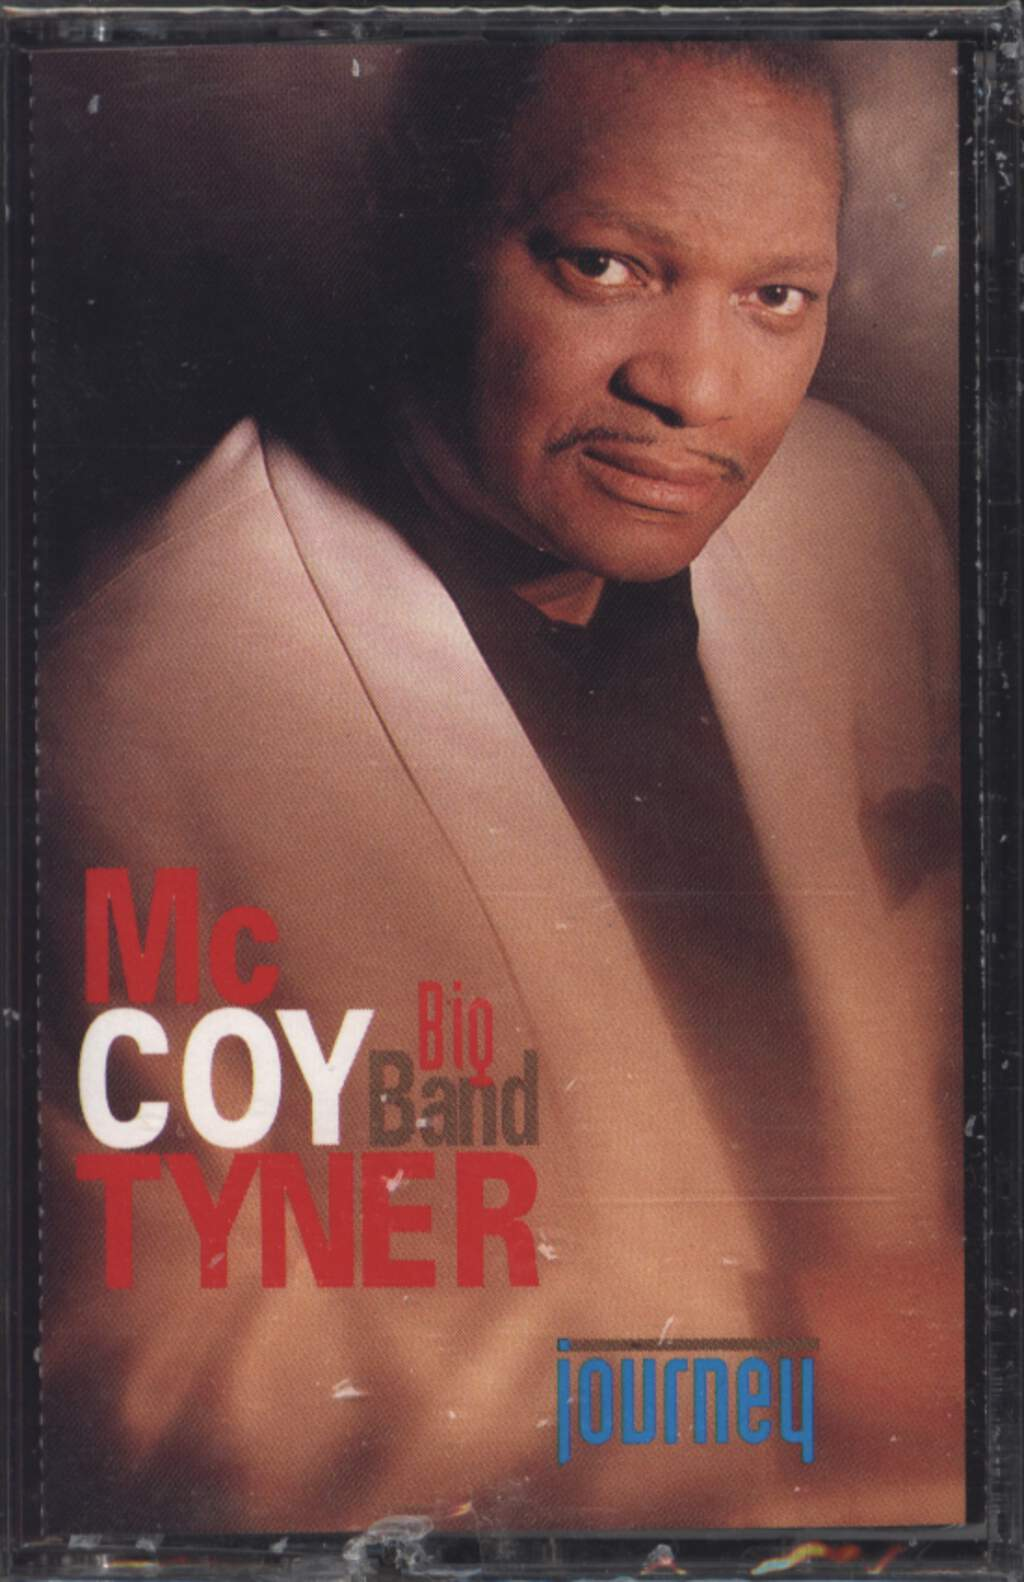 McCoy Tyner Big Band: Journey, Compact Cassette